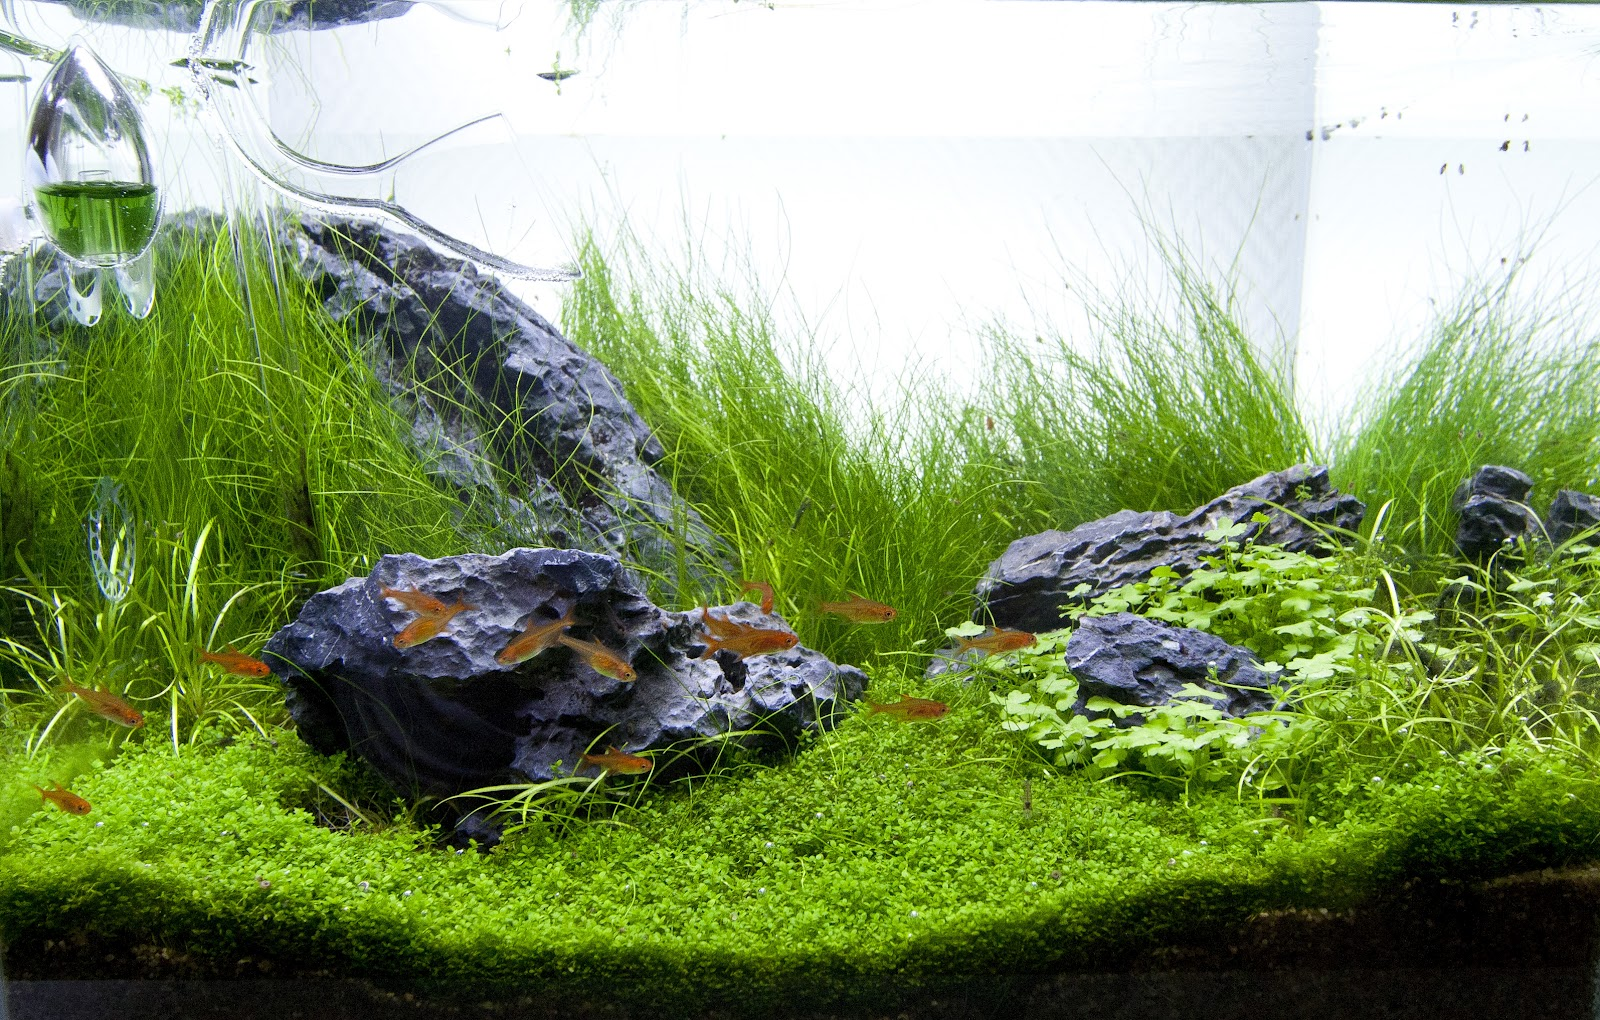 ... Hydrocotyle sp. Japan, which is a really nice plant for aquascaping